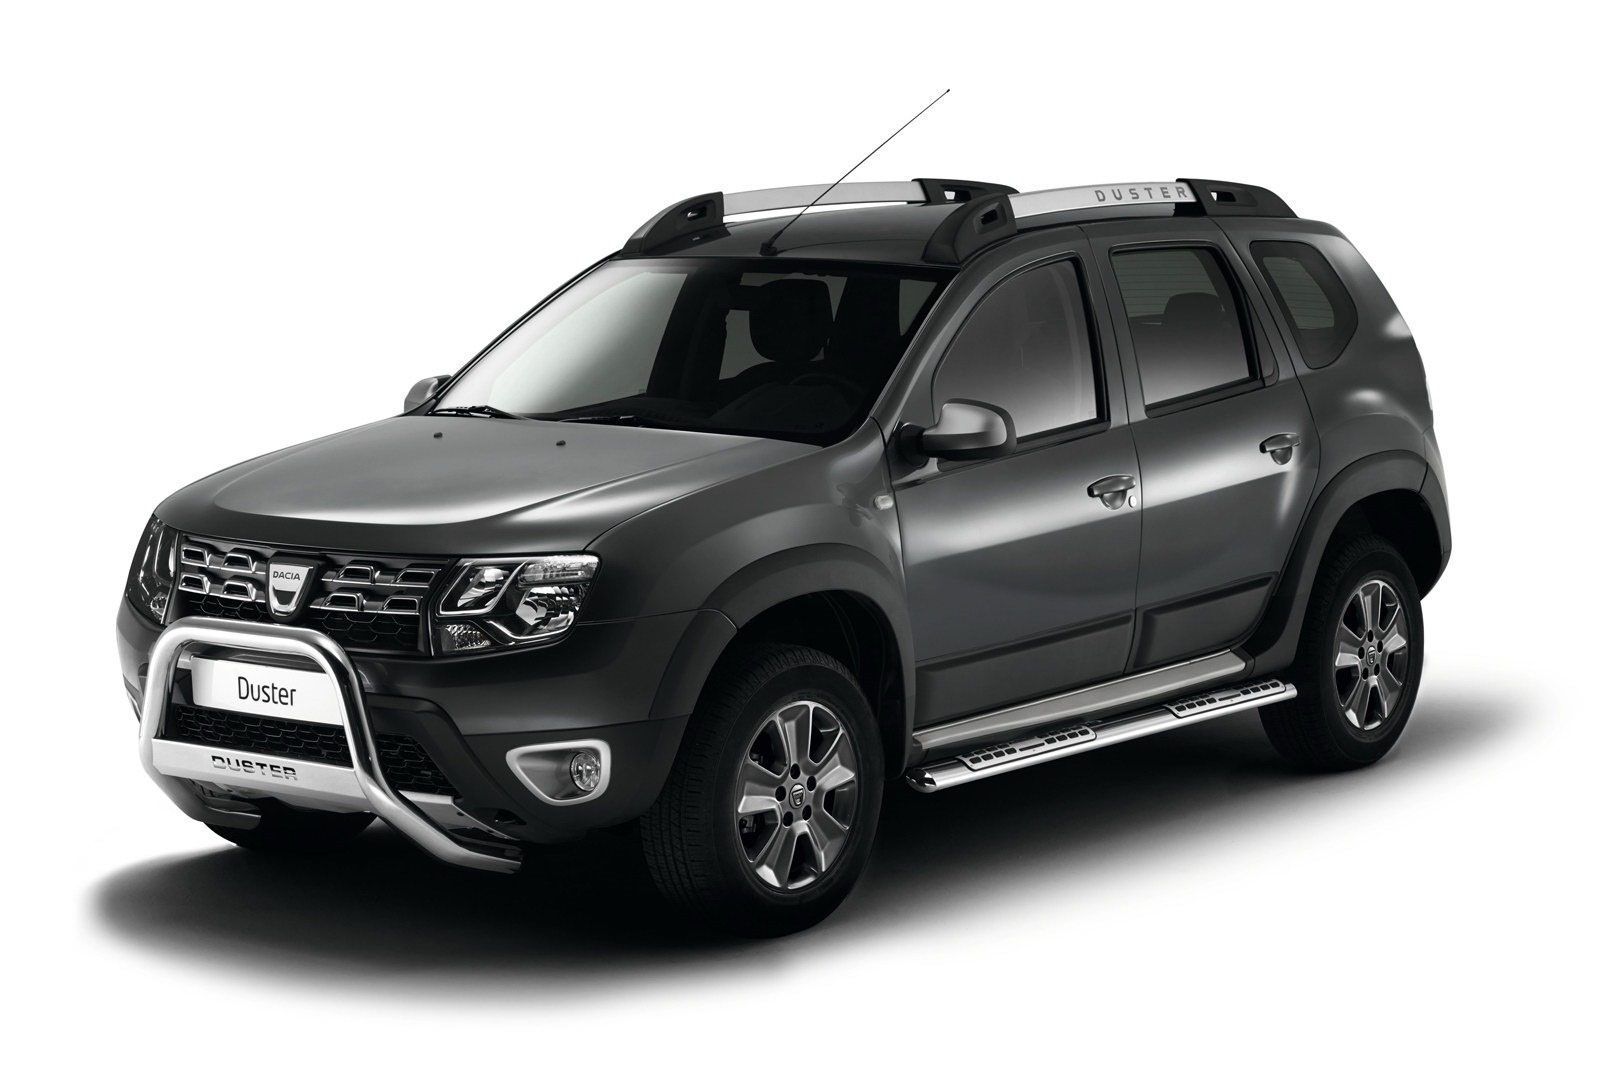 New Dacia Duster 1.2 TCe Detailed [Video] - autoevolution